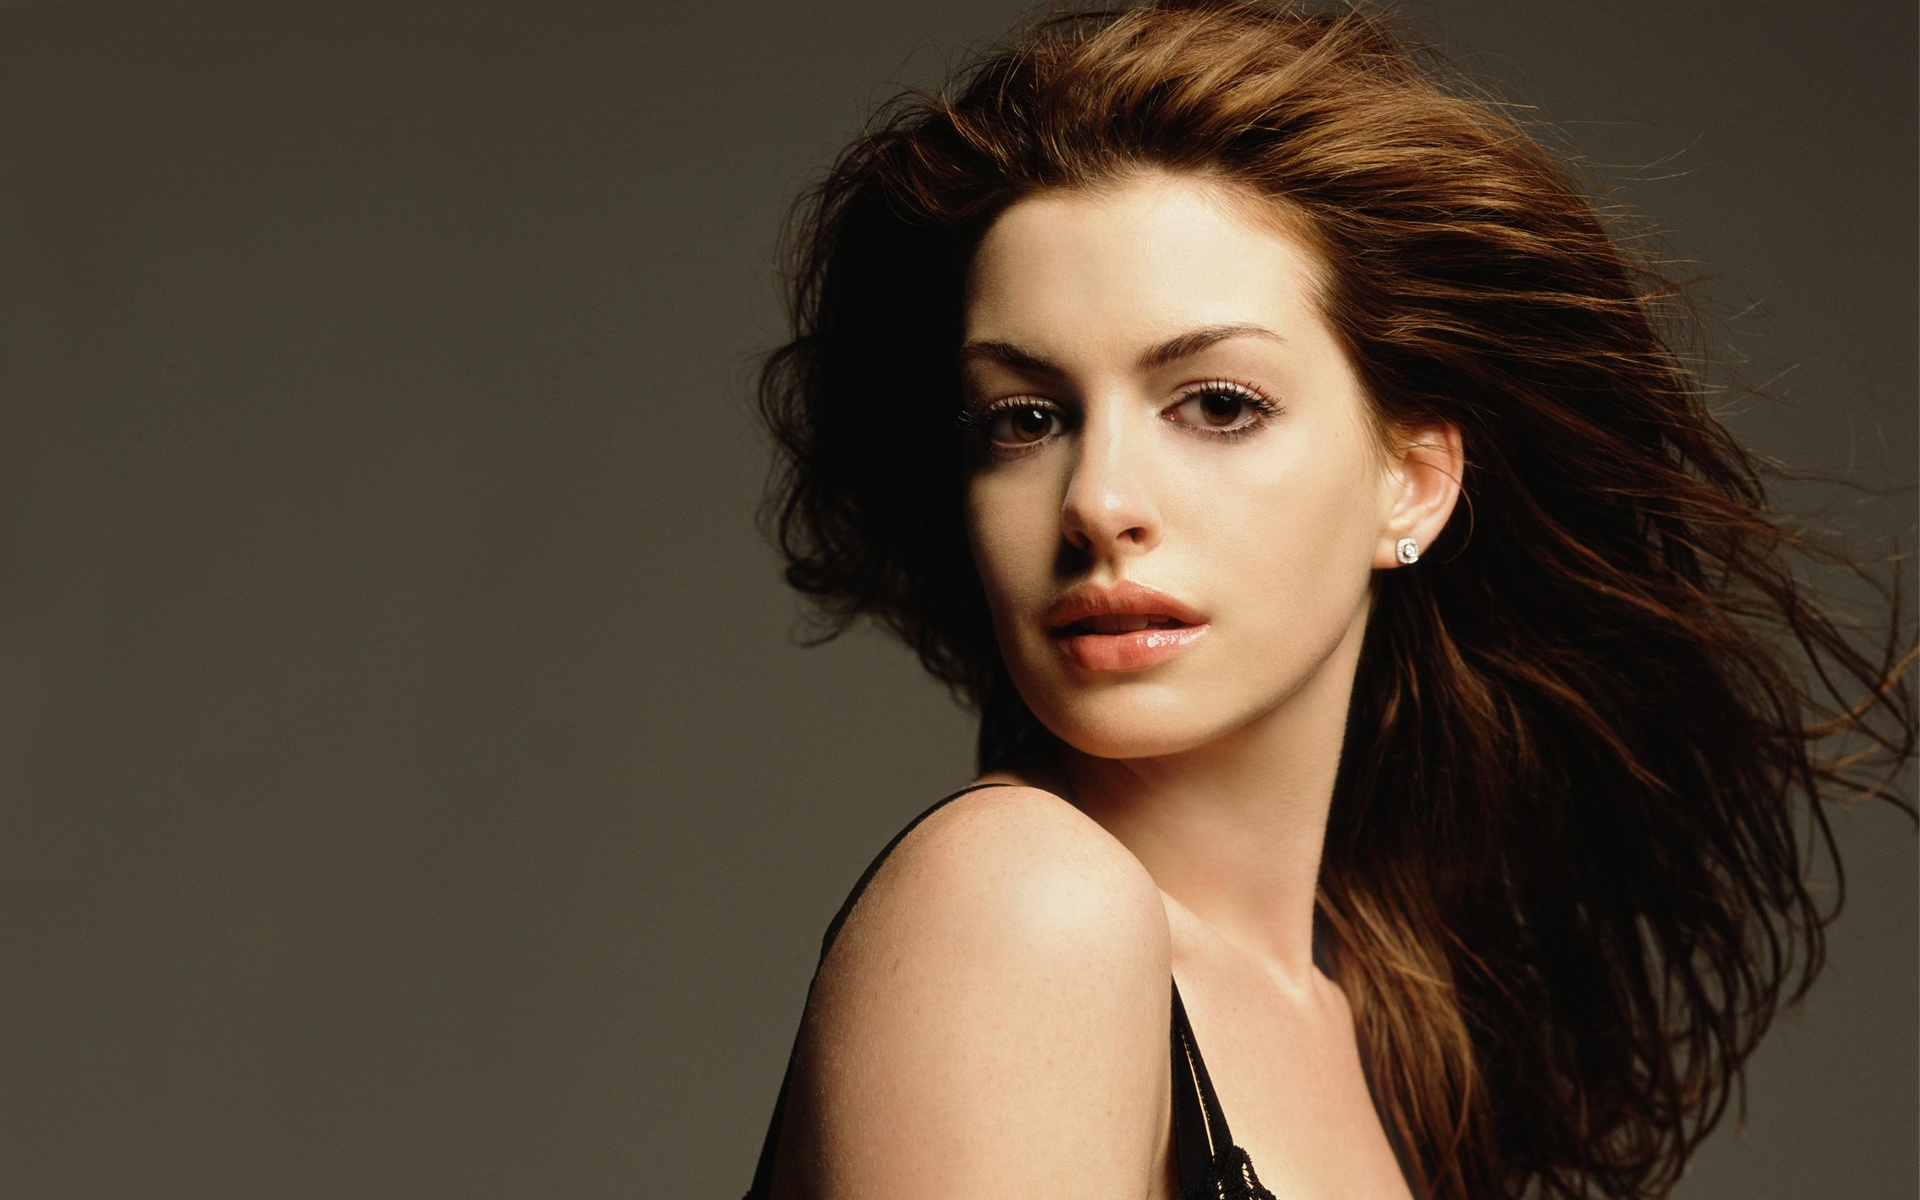 anne hathaway wallpapers hd A5